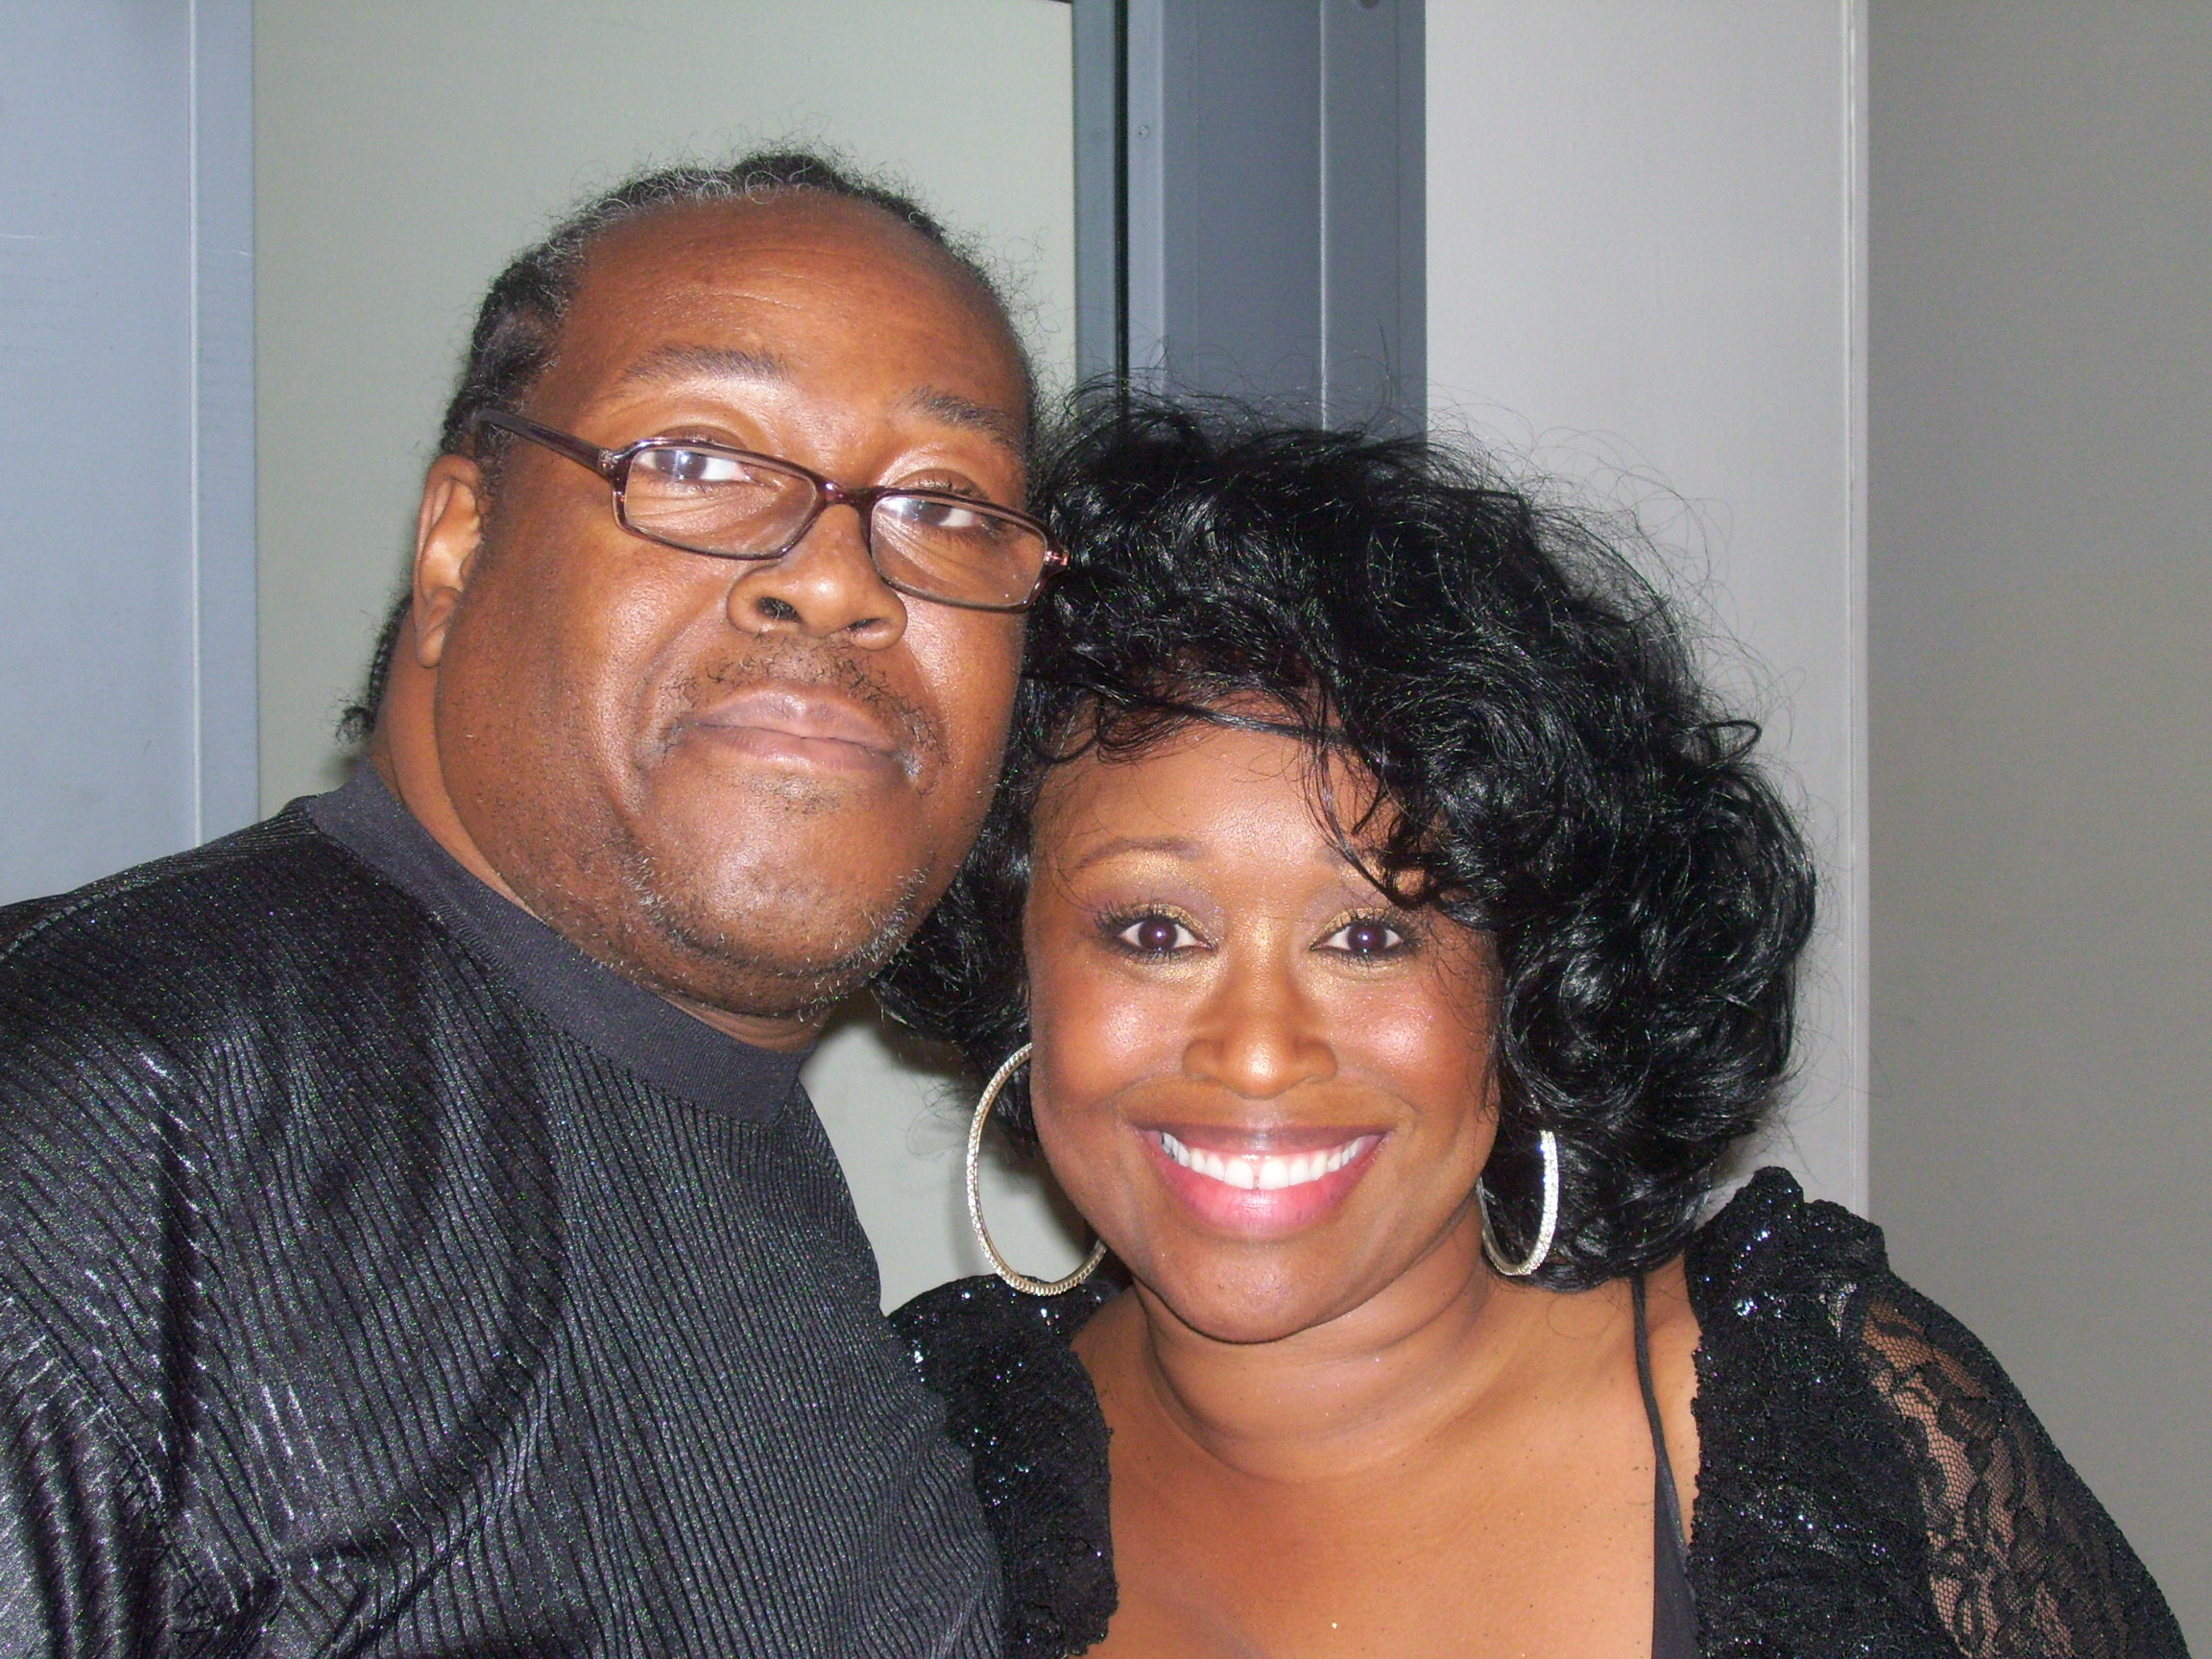 PJ WILLIS WITH TERRISSA GRIFFIN